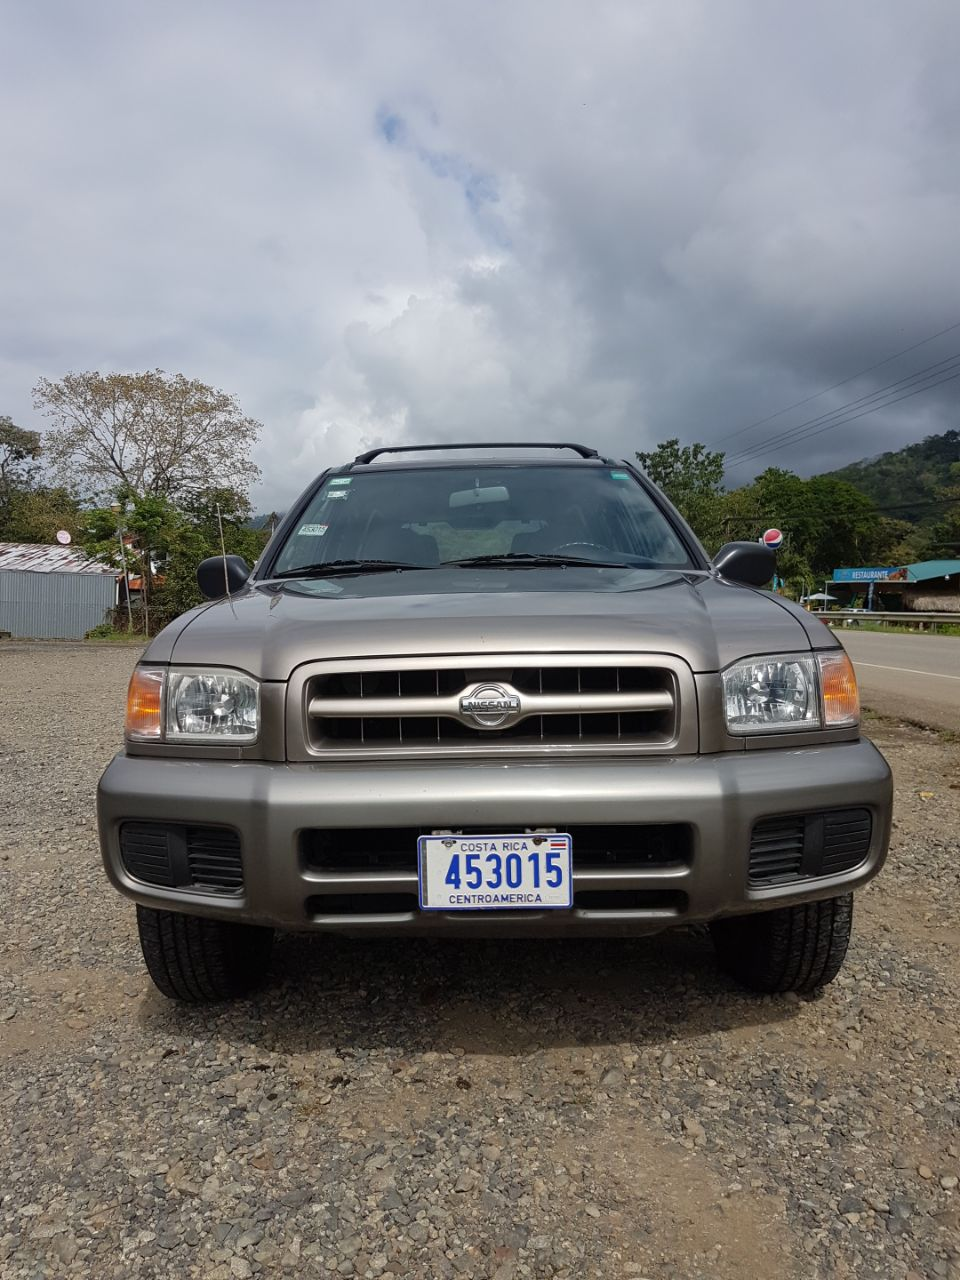 Nissan Pathfinder Bj. 2002, KM 161.000, engine type VG33, 4x4 four-wheel drive, petrol engine 3 liters